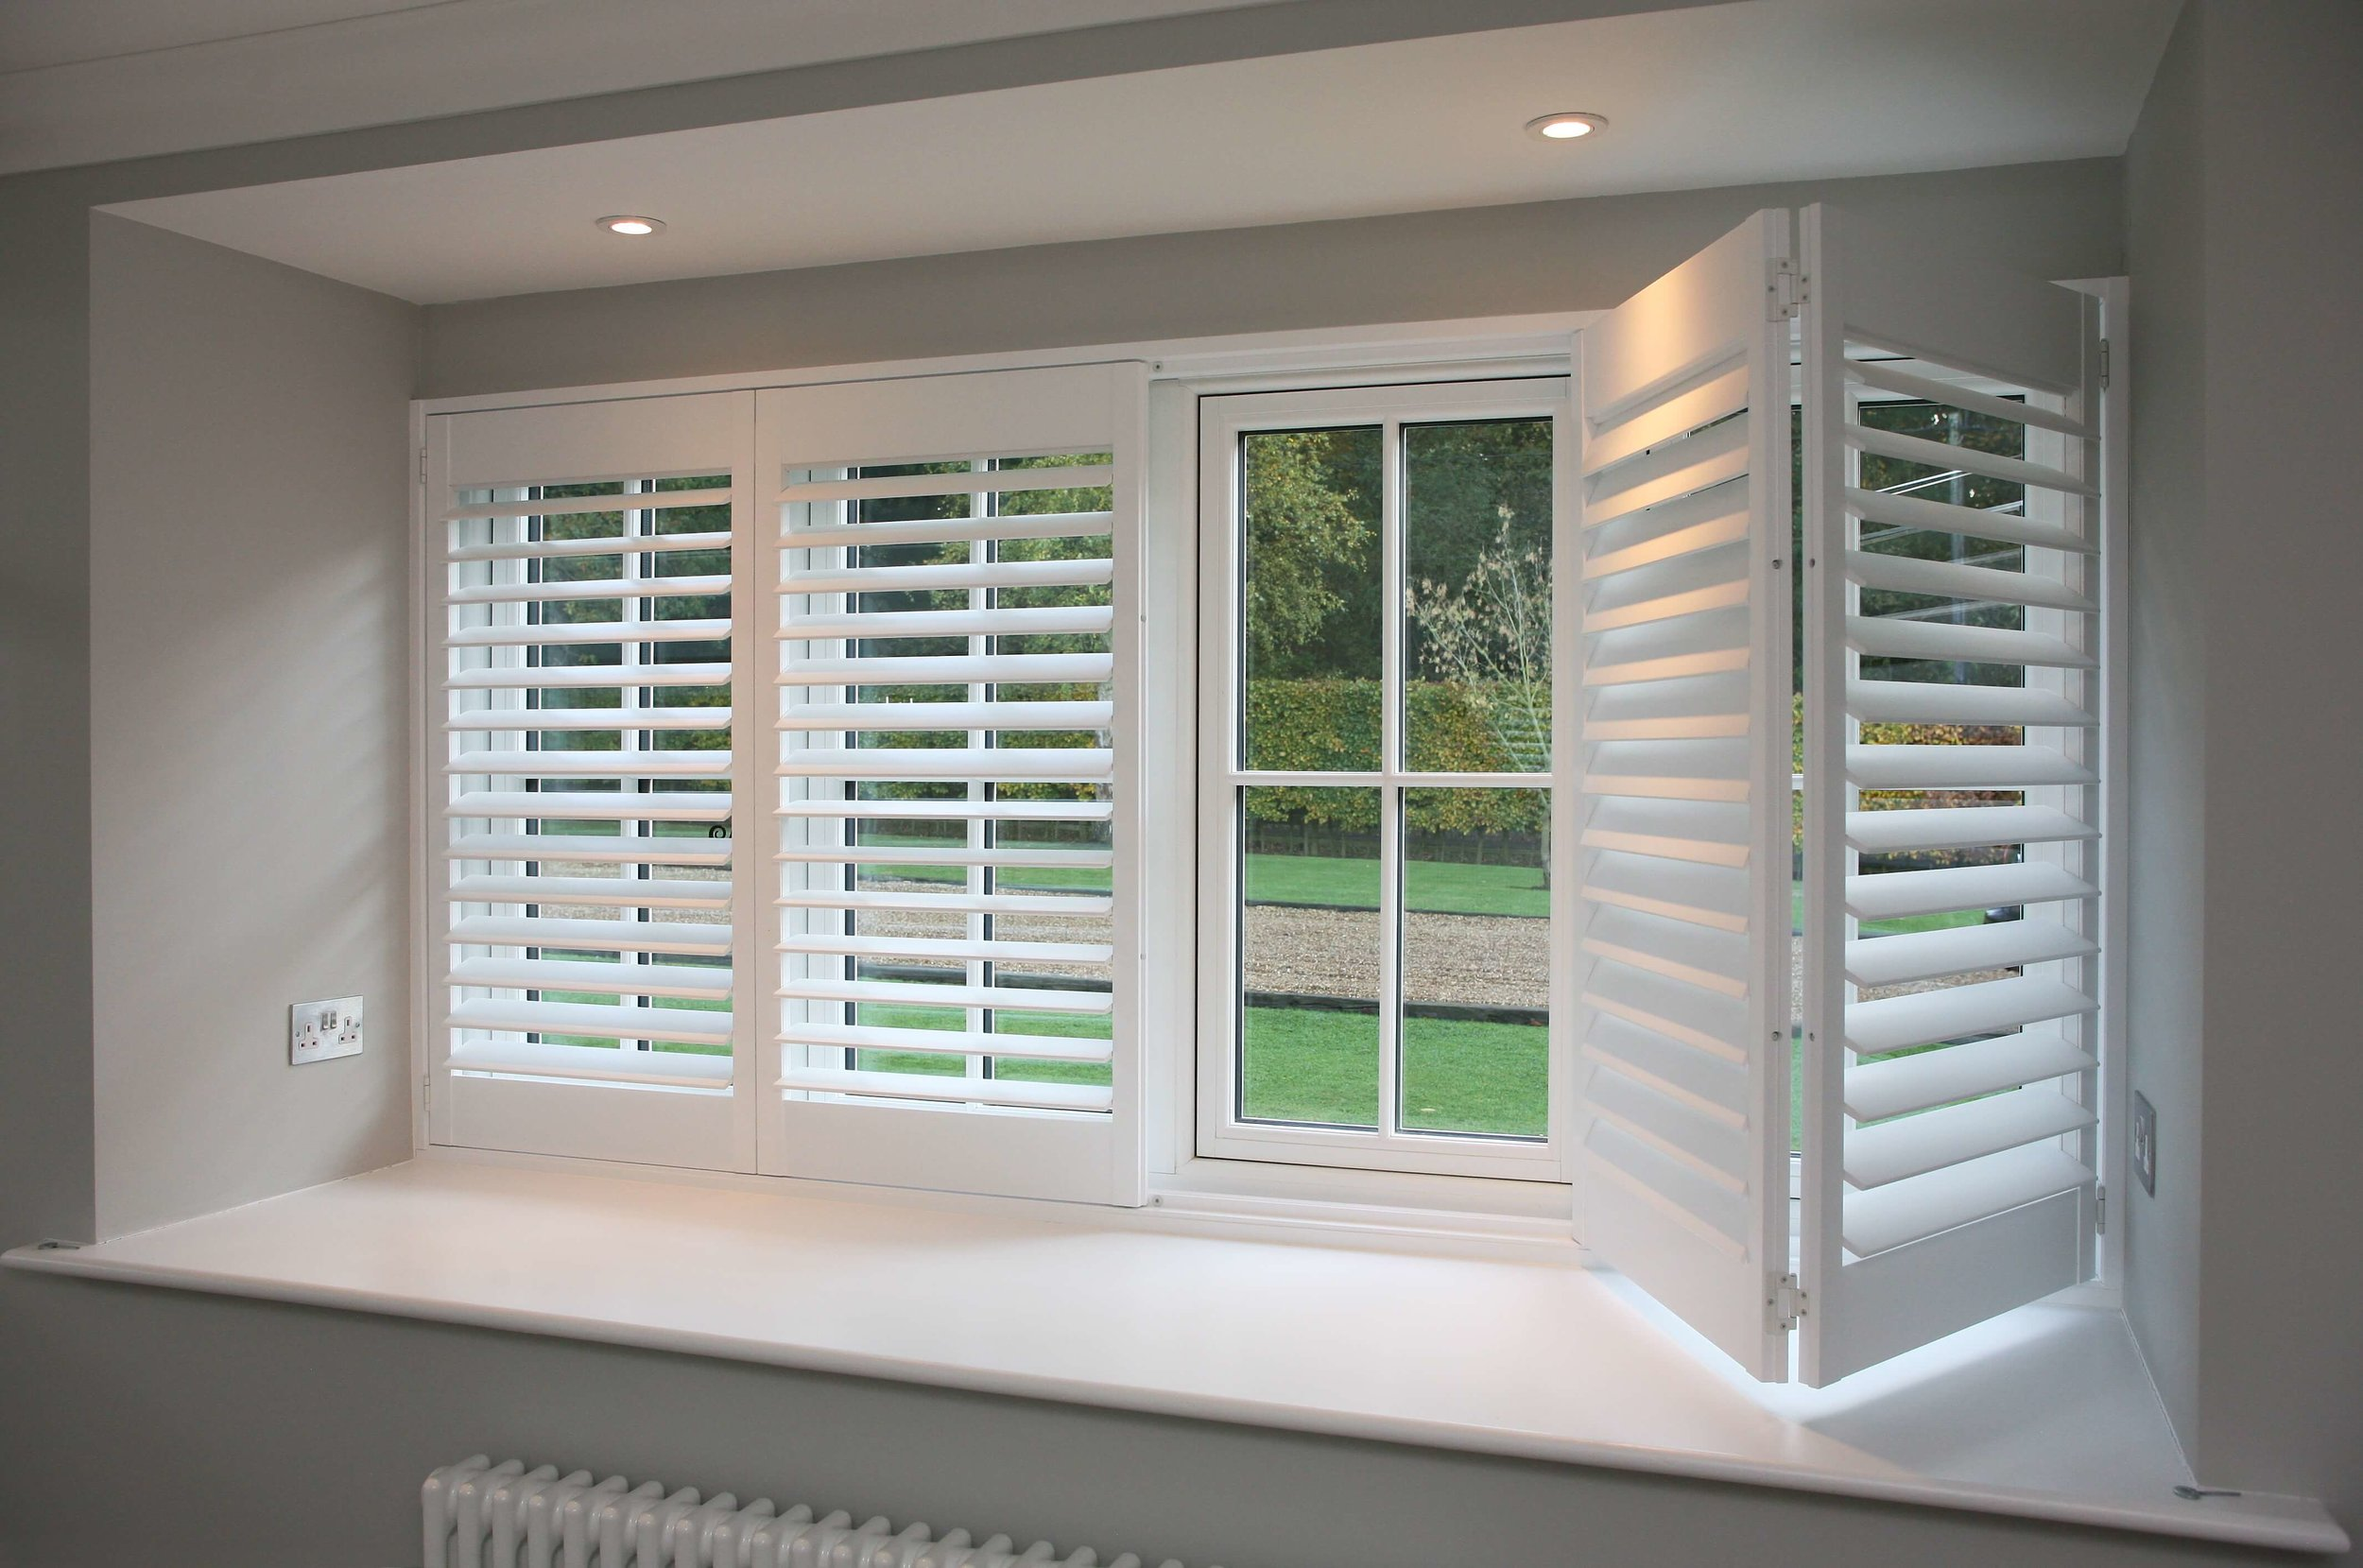 Window Covers - Are you looking for blinds, shades, or shutters? We work with the top brands in the business to give you the best options for your home including Hunter Douglas.